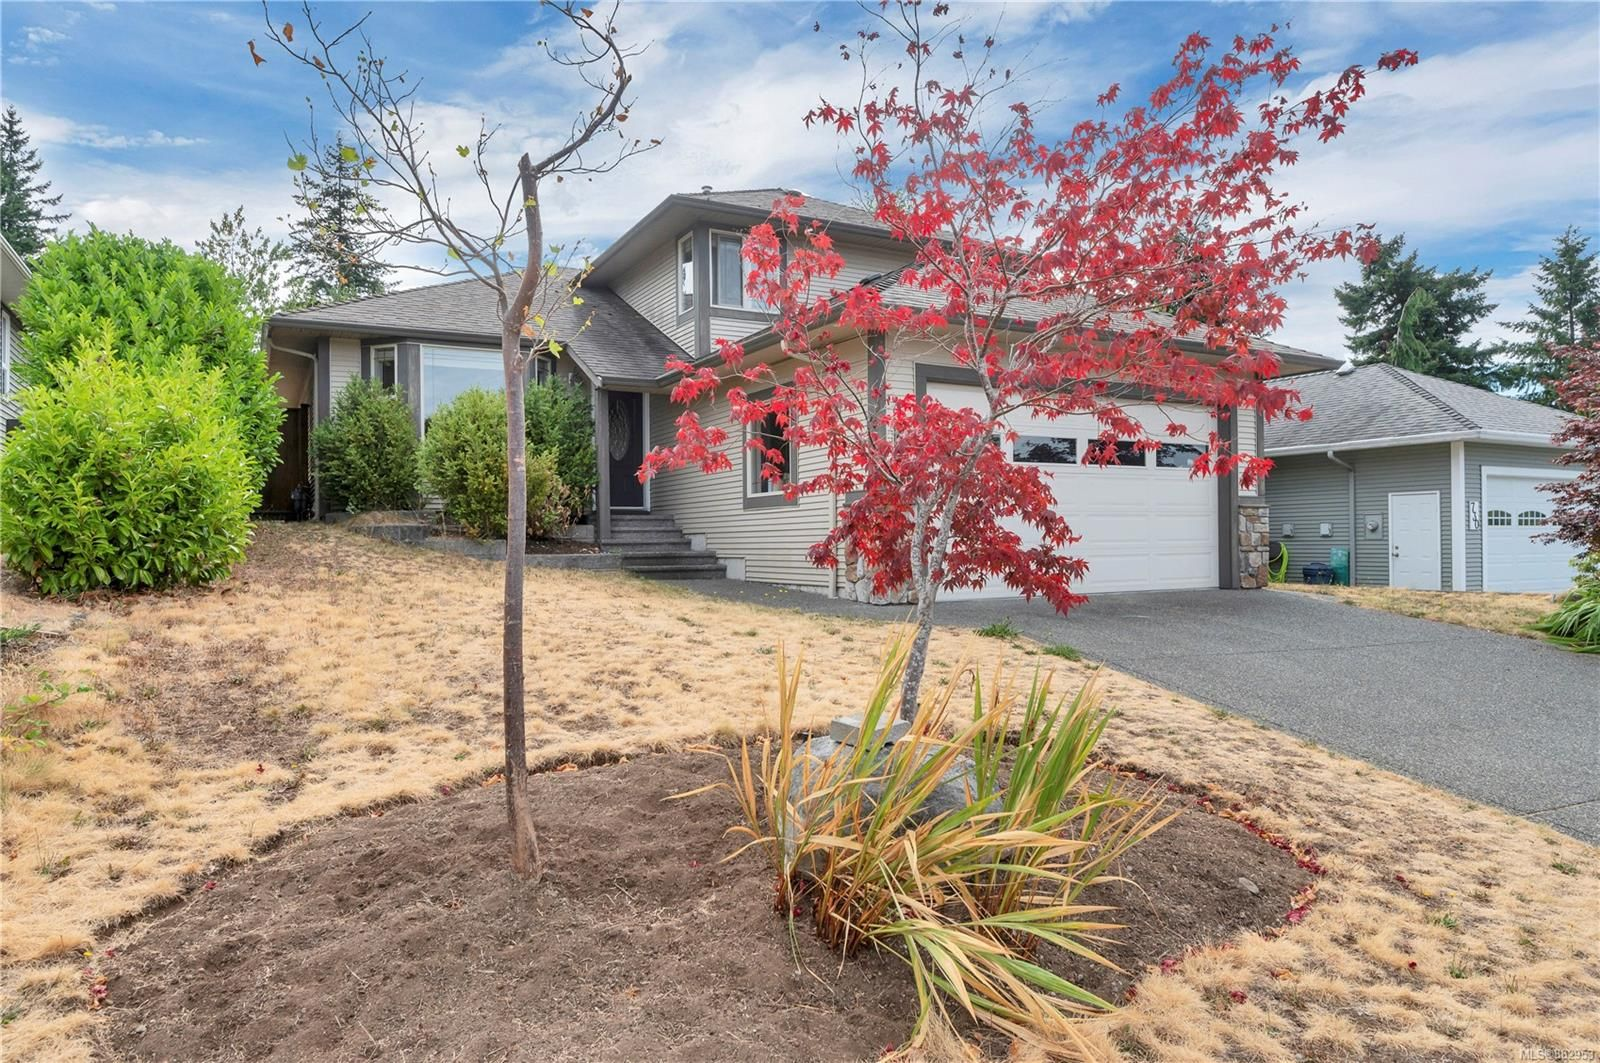 Main Photo: 732 Oribi Dr in : CR Campbell River Central House for sale (Campbell River)  : MLS®# 882953